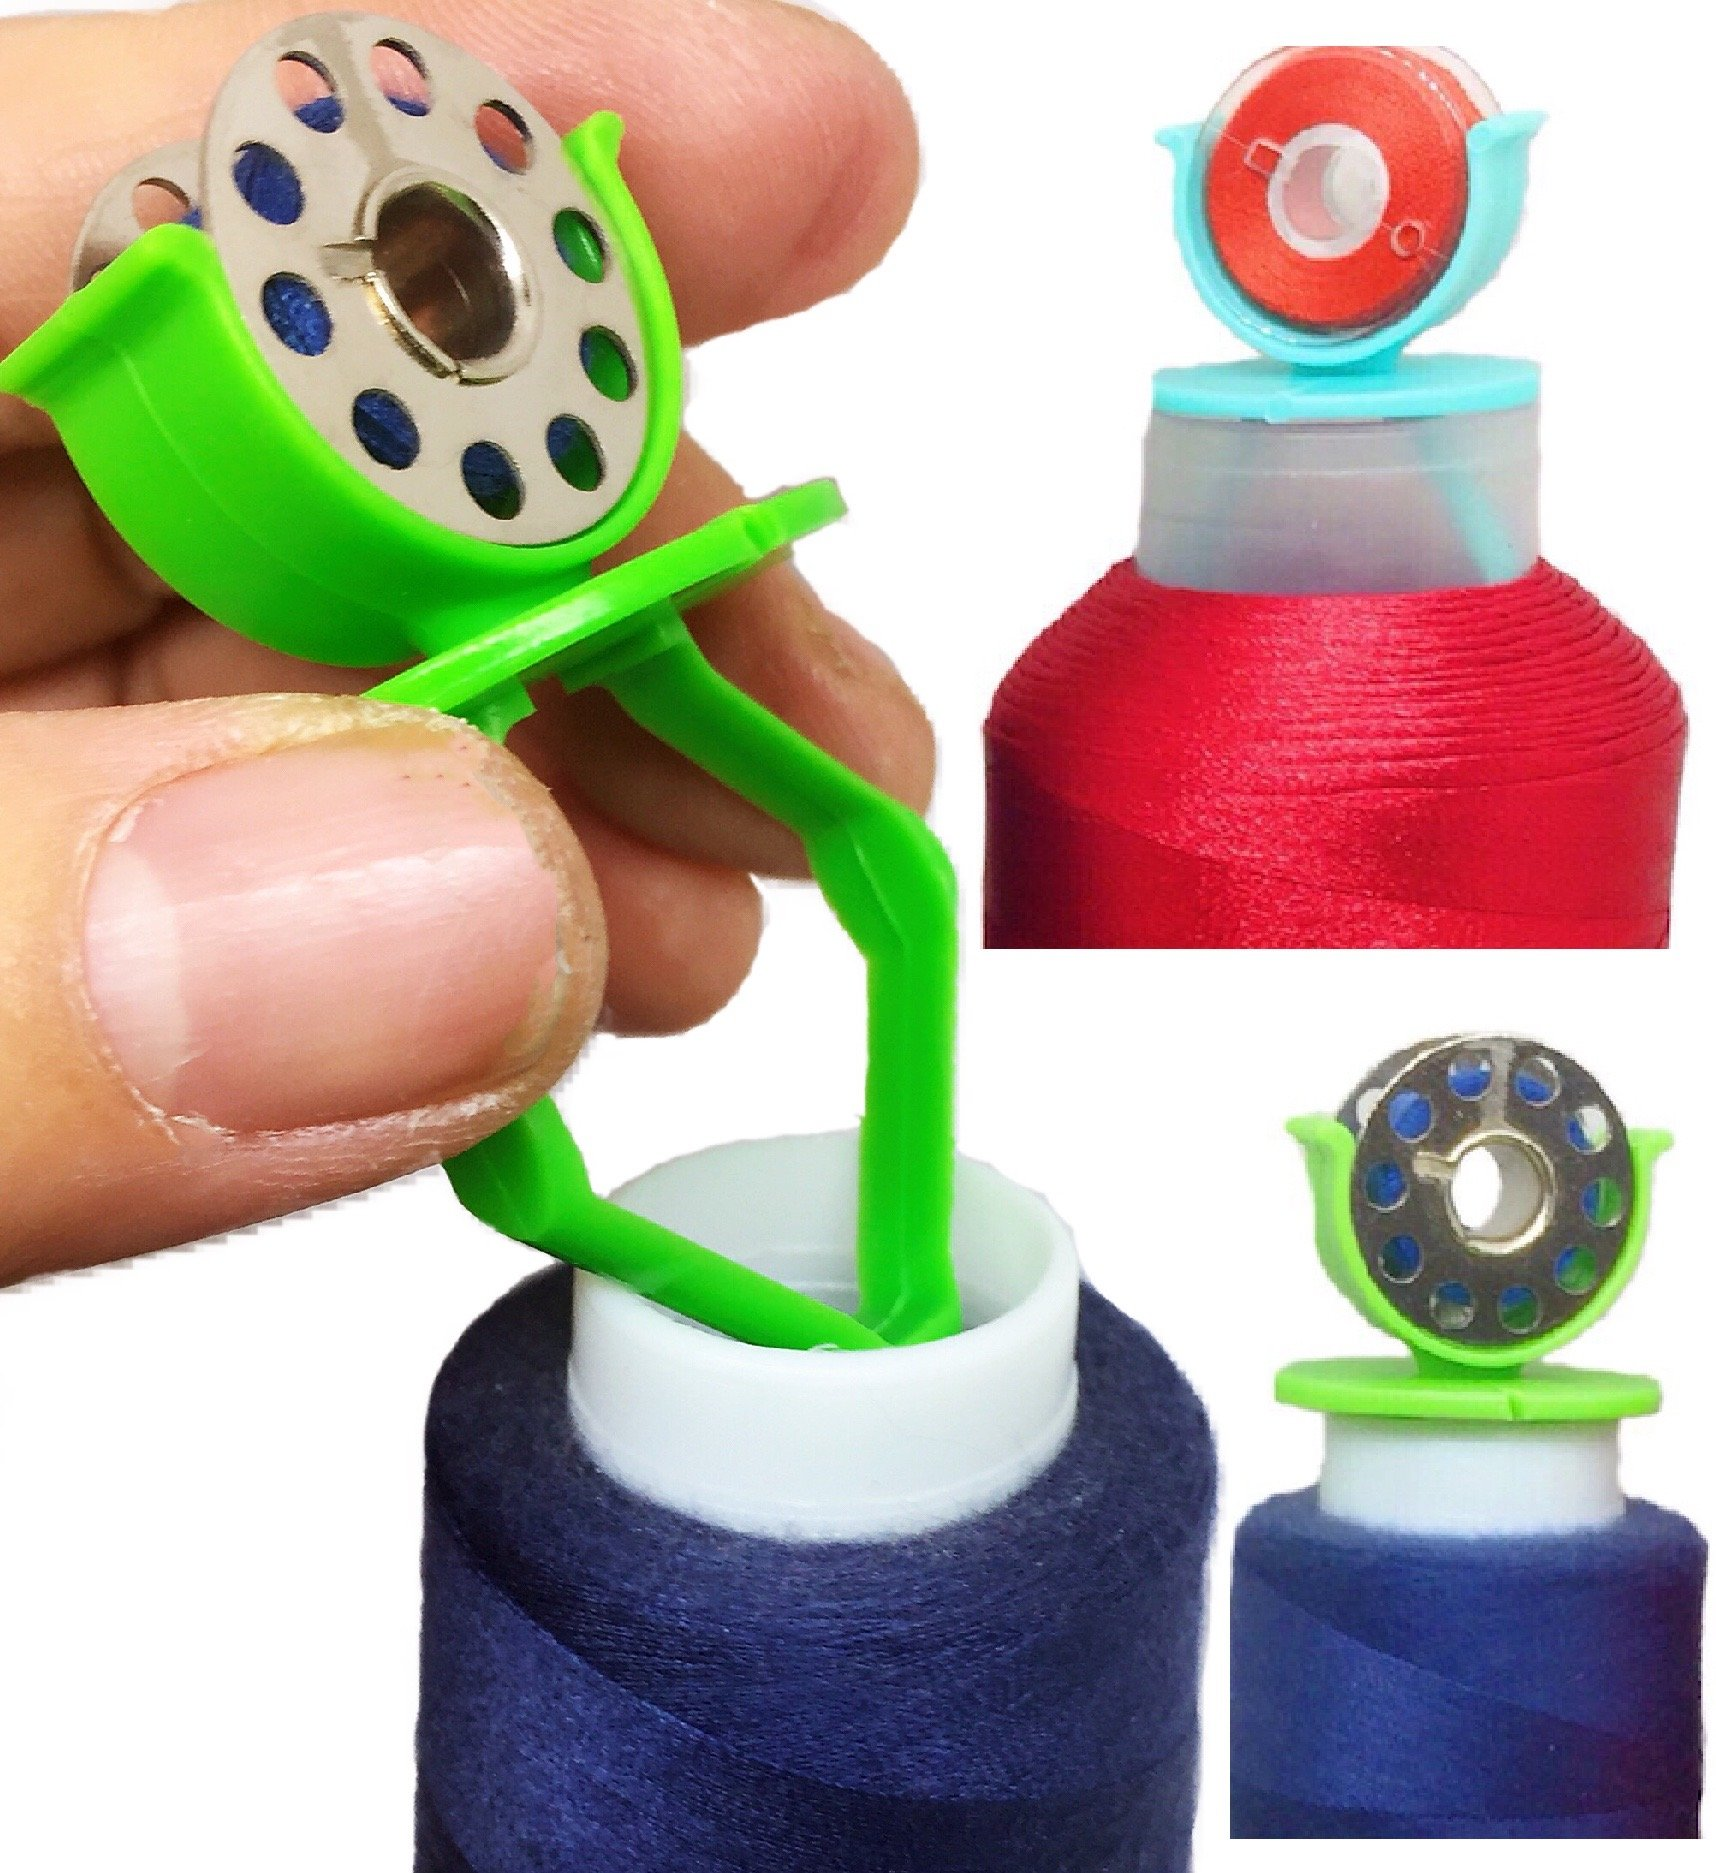 PeavyTailor 15 pcs Bobbin Buddies Bobbin Holder Clamp Great for Embroidery Quilting Sewing Machine #3